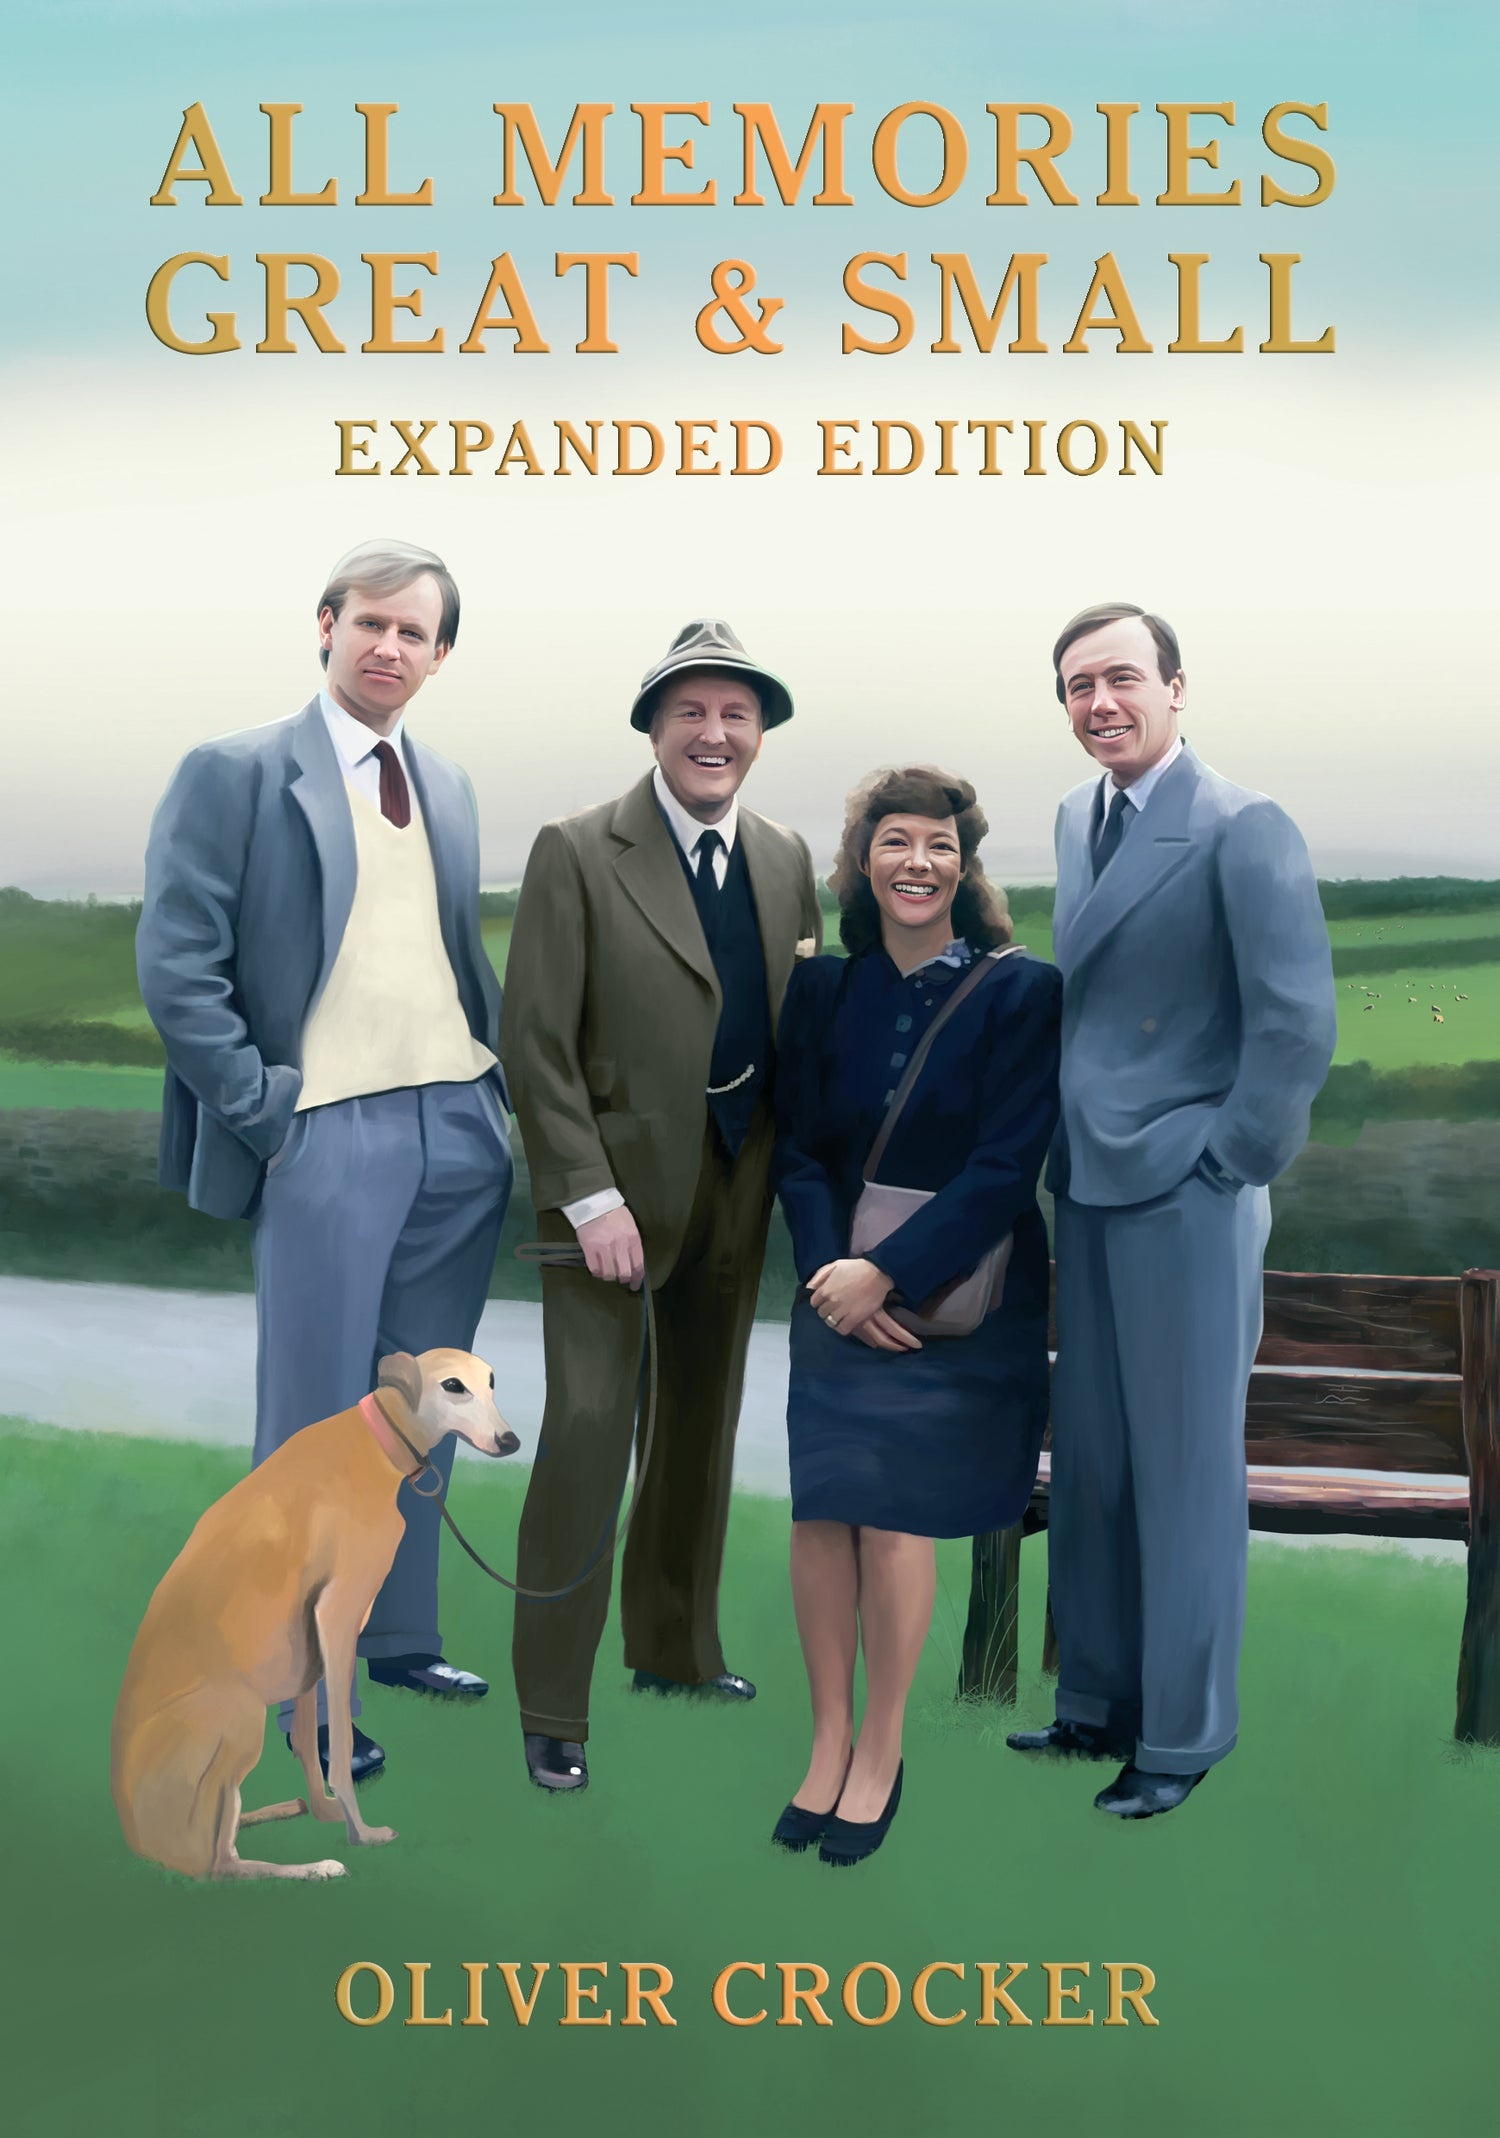 All Memories Great & Small: Expanded Edition (Paperback)